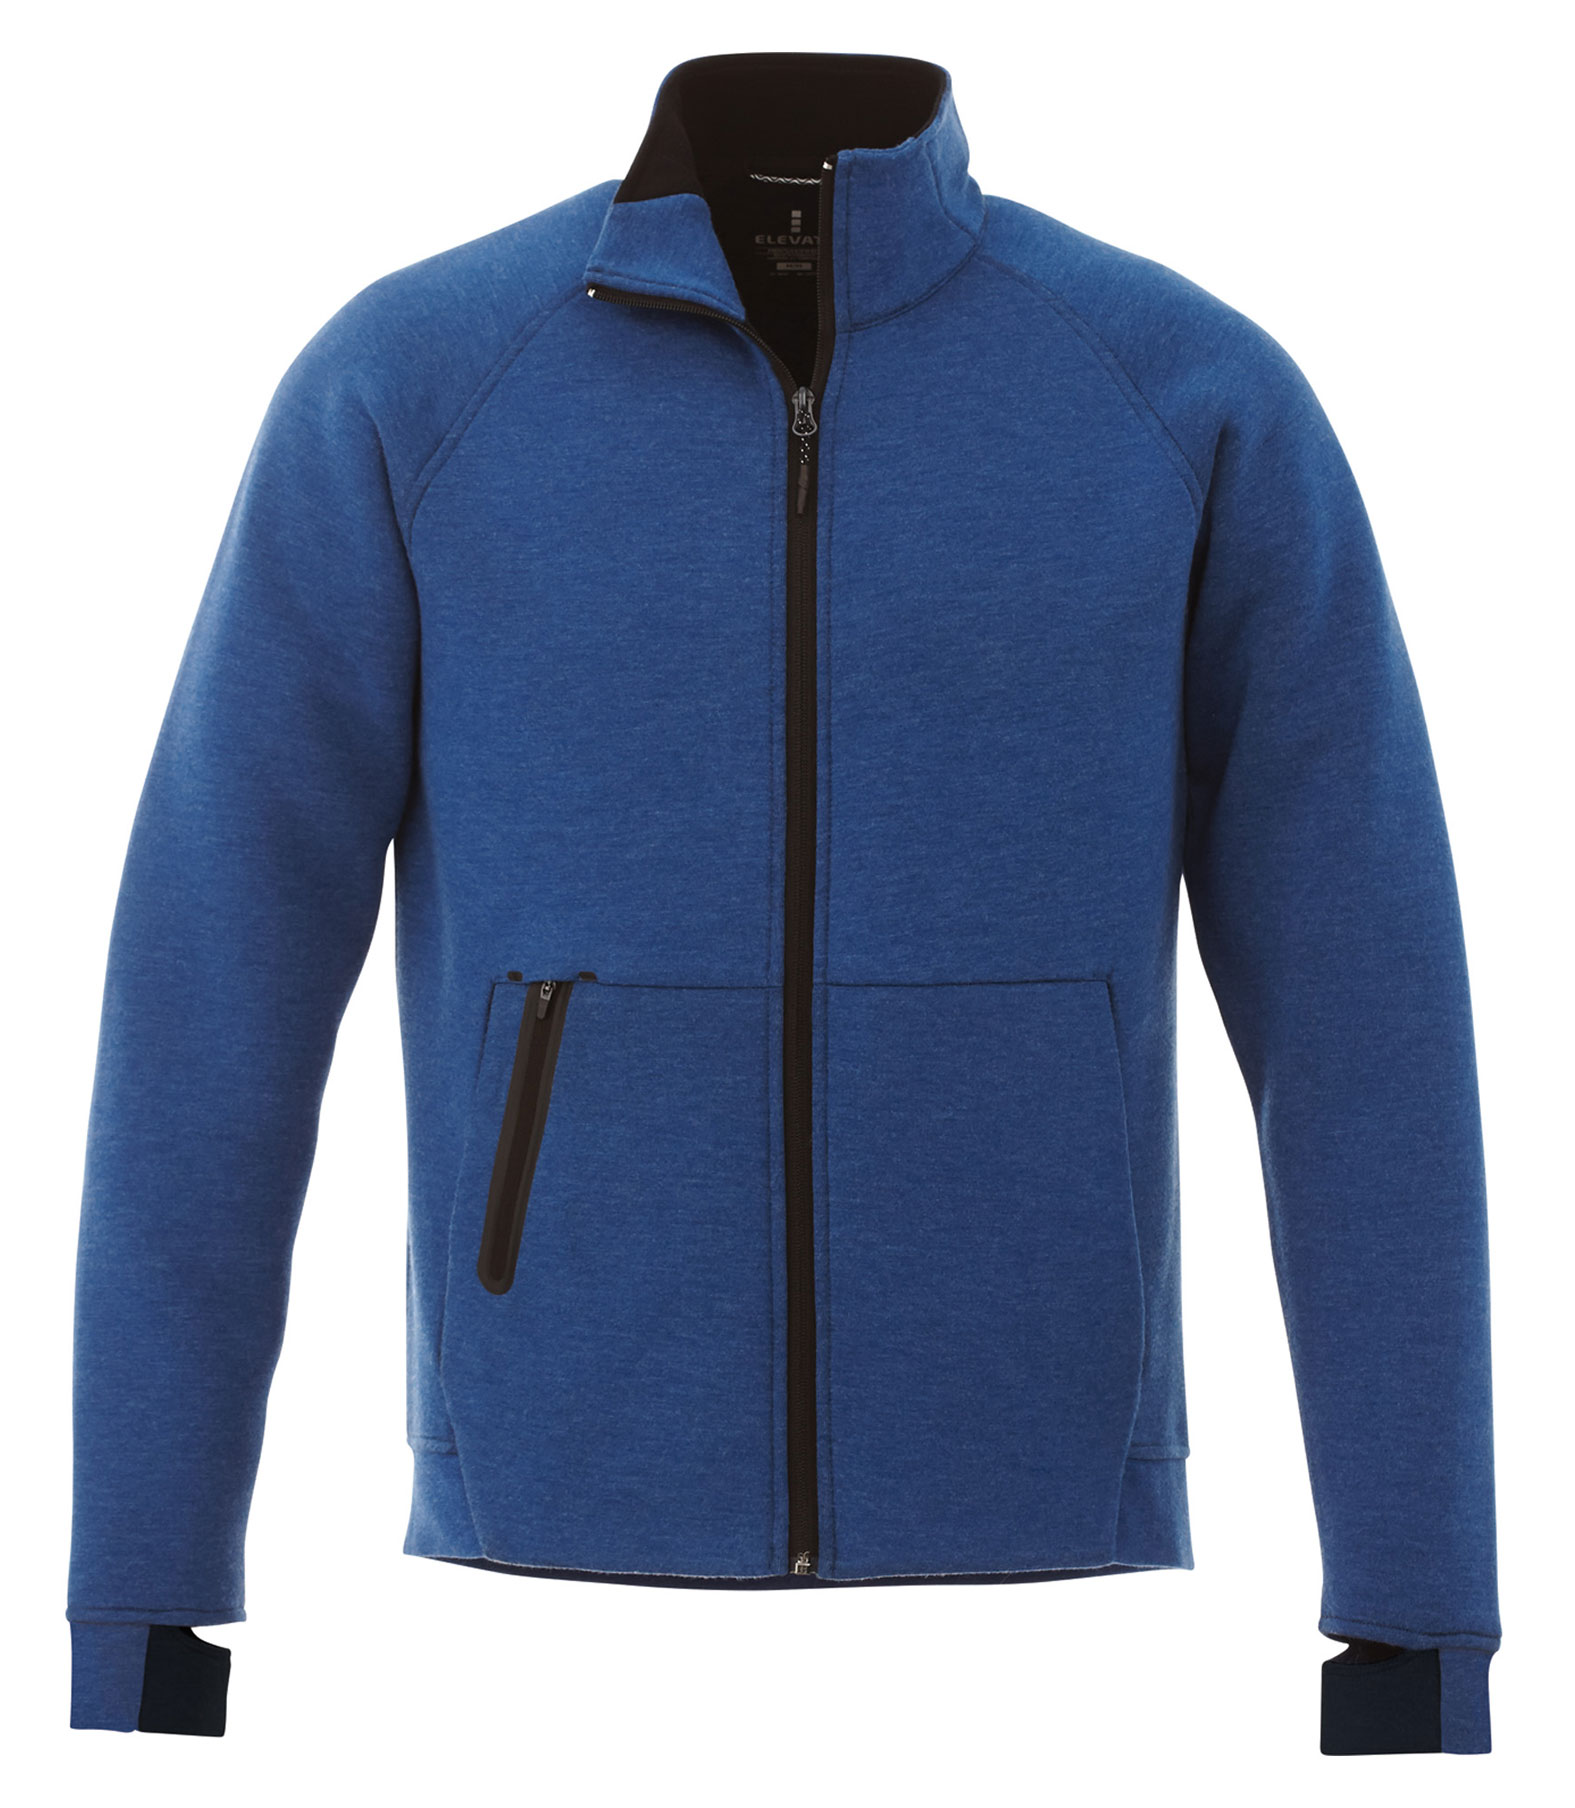 Mens Kariba Knit Jacket